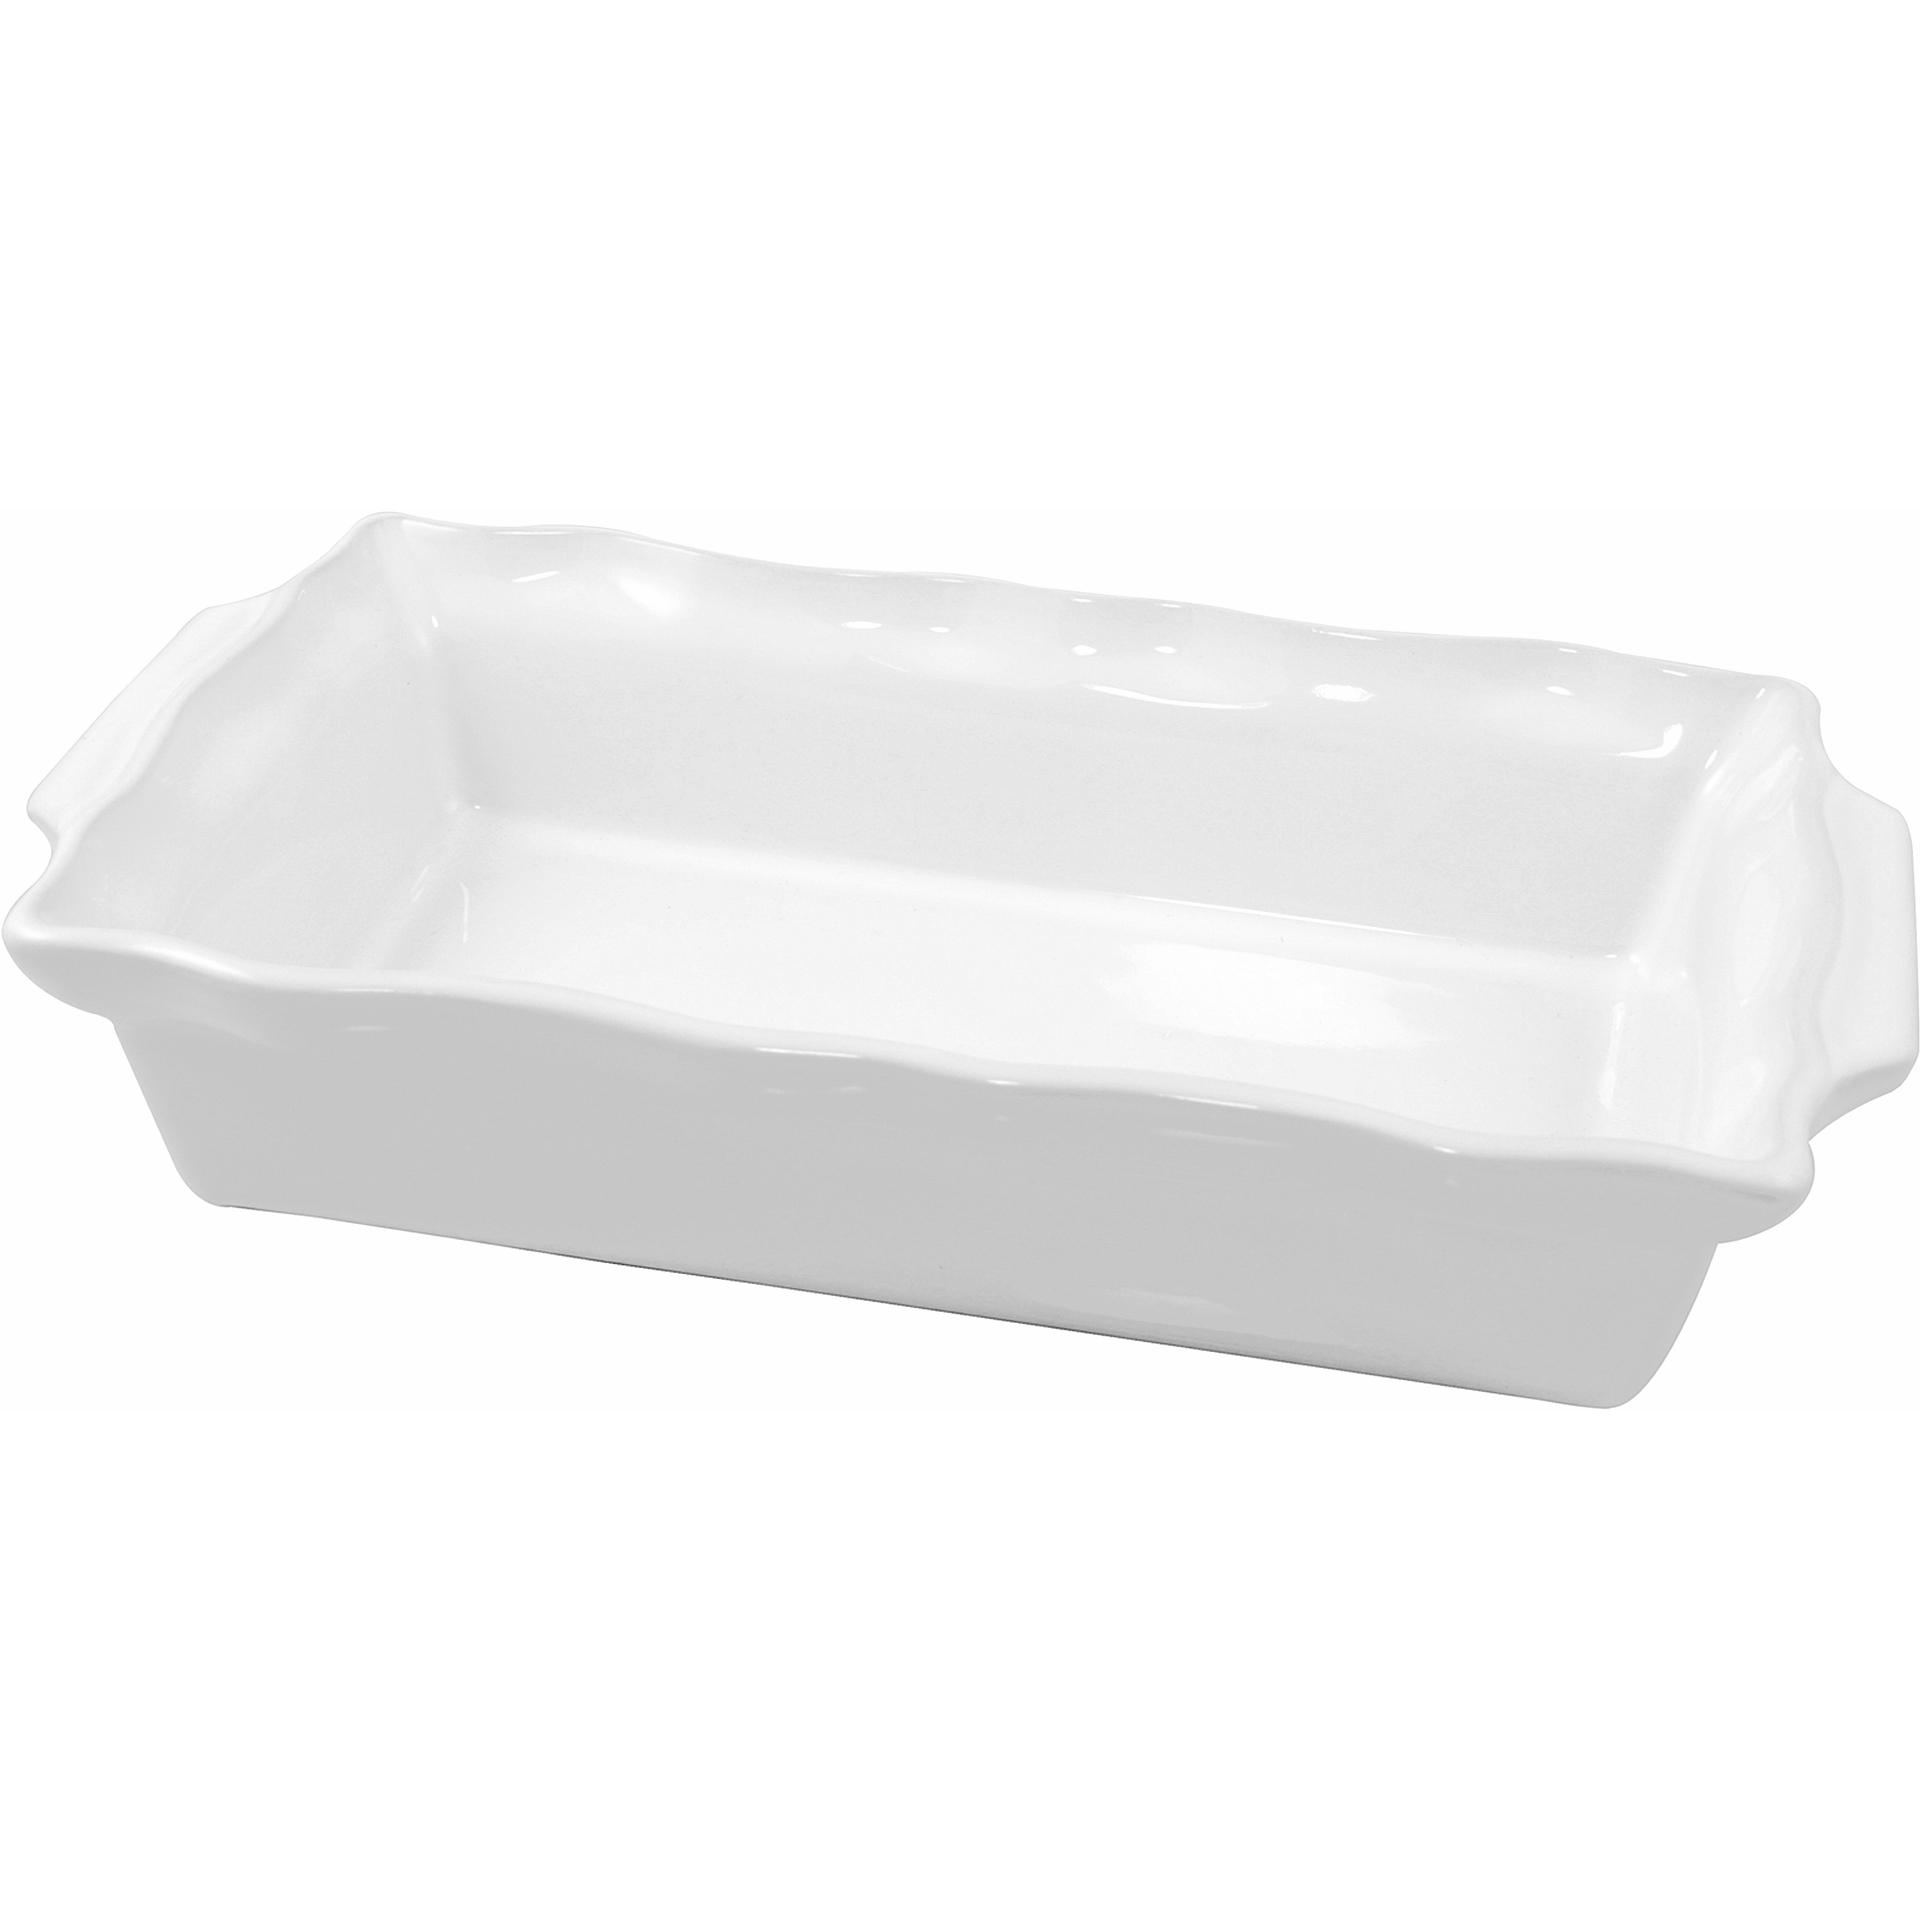 Le Cordon Bleu Paris By Swissmar Rectangular Blanc Ceramic 3 Quart Roasting Dish